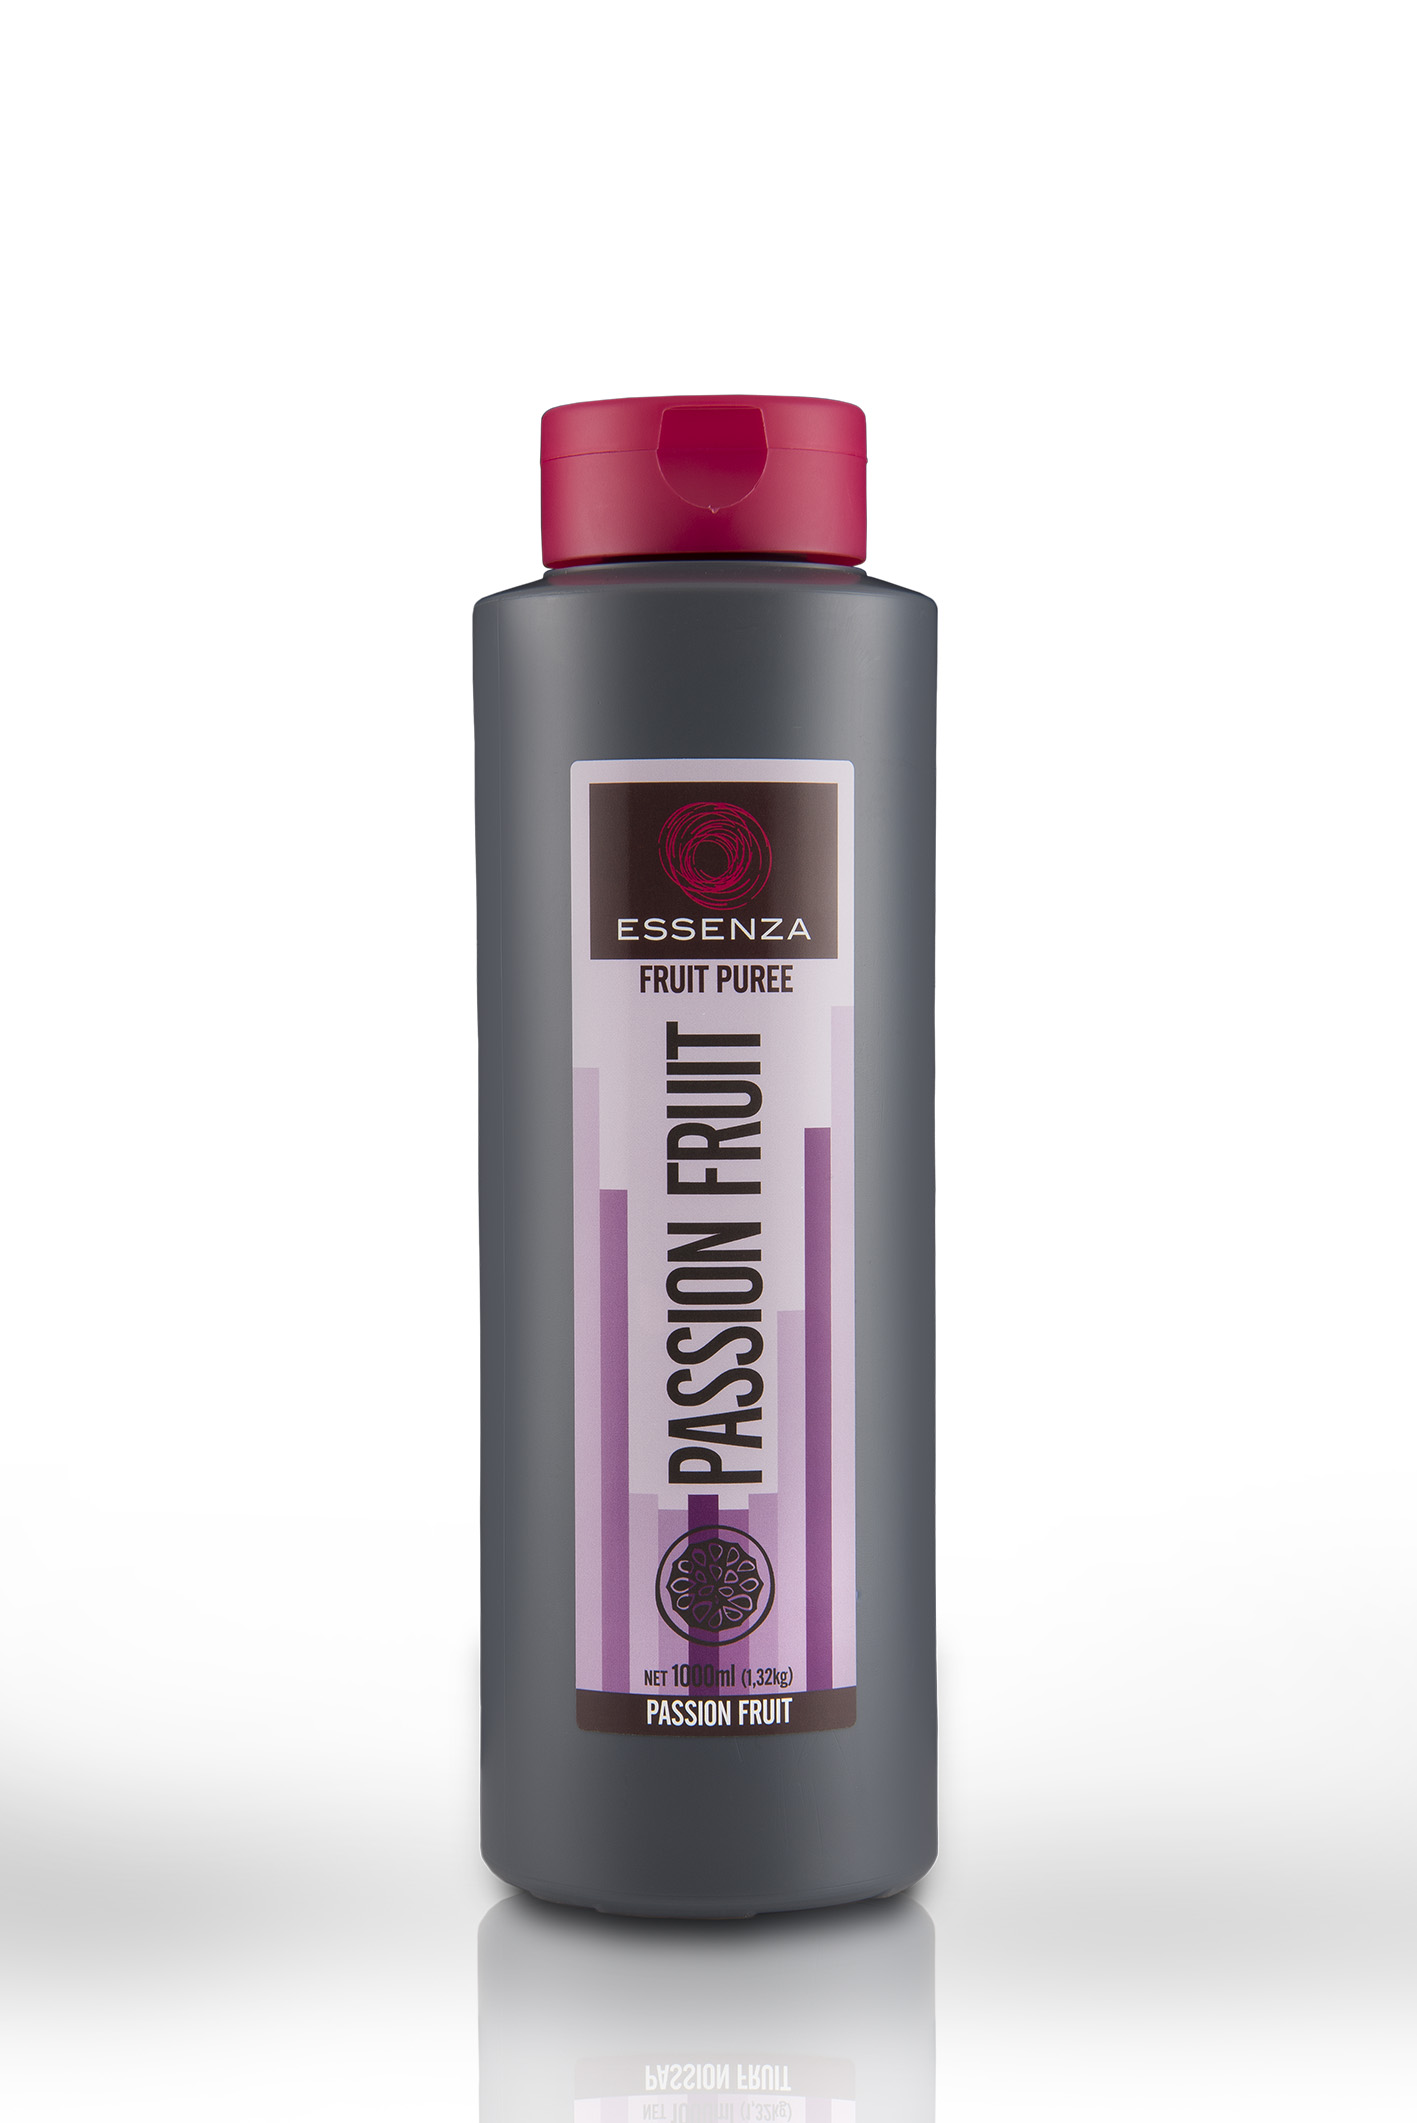 PASSION FRUIT ΠΟΥΡΕΣ ΦΡΟΥΤΩΝ ESSENZA 1000ml Image